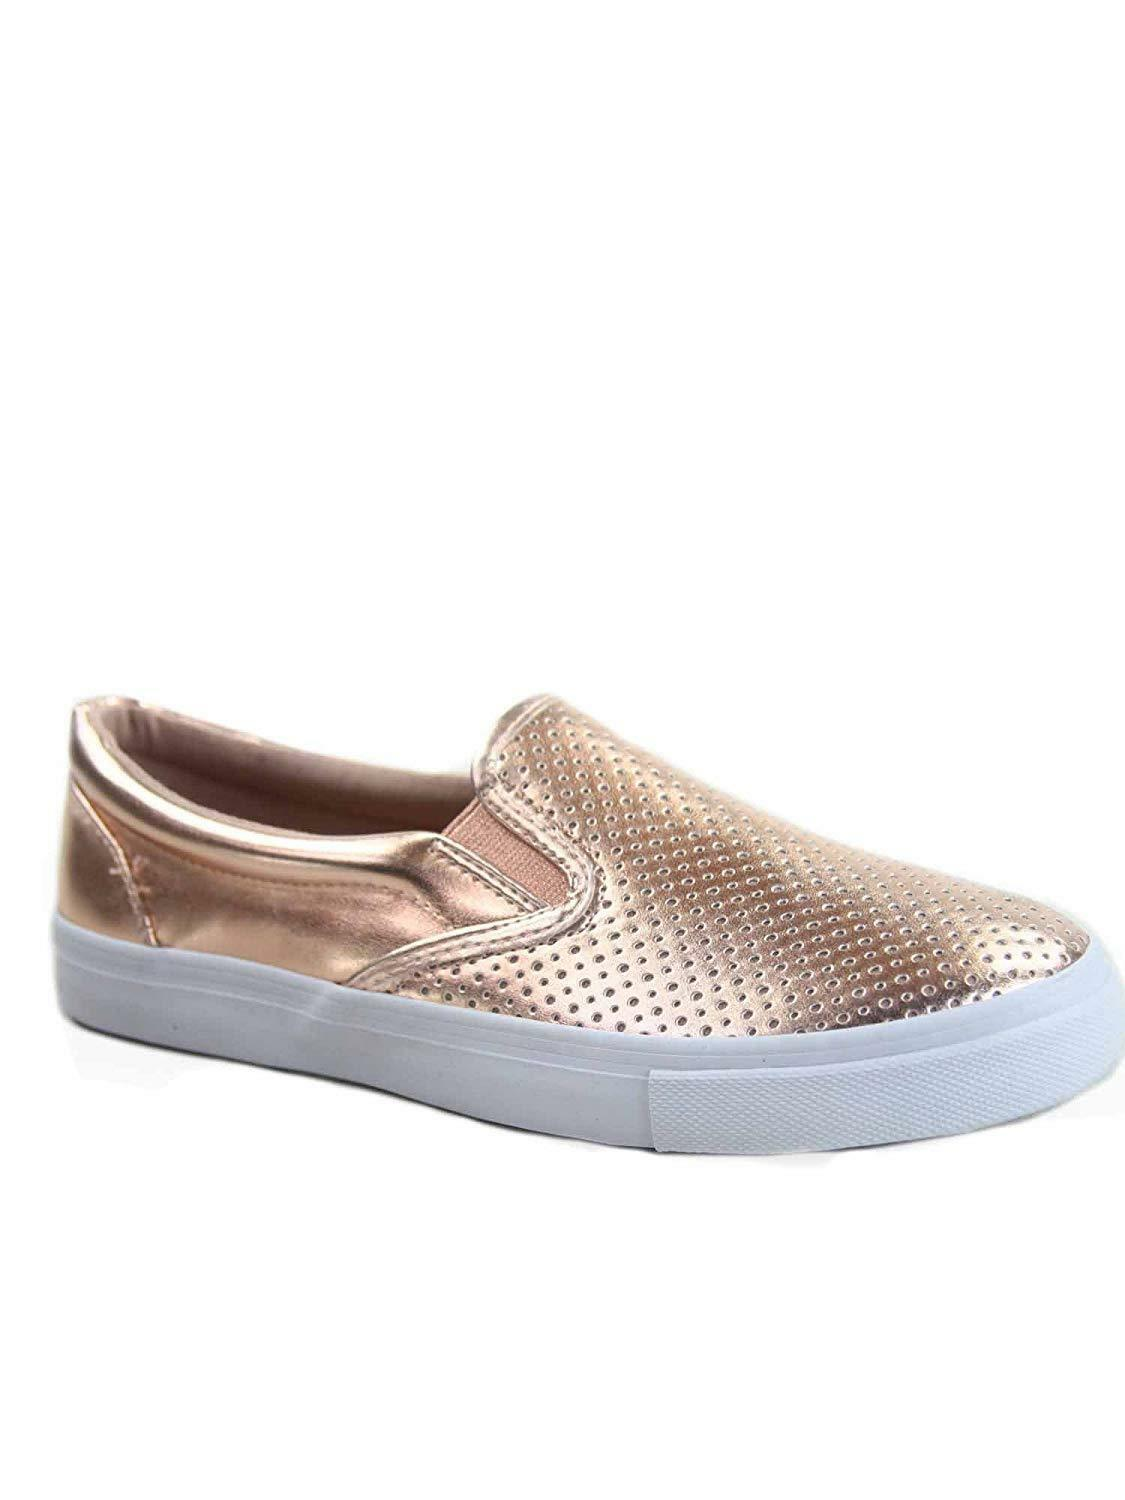 Soda Tracer-S Women's Cute Perforated Slip On Flat Round Toe Sneaker Shoes image 5